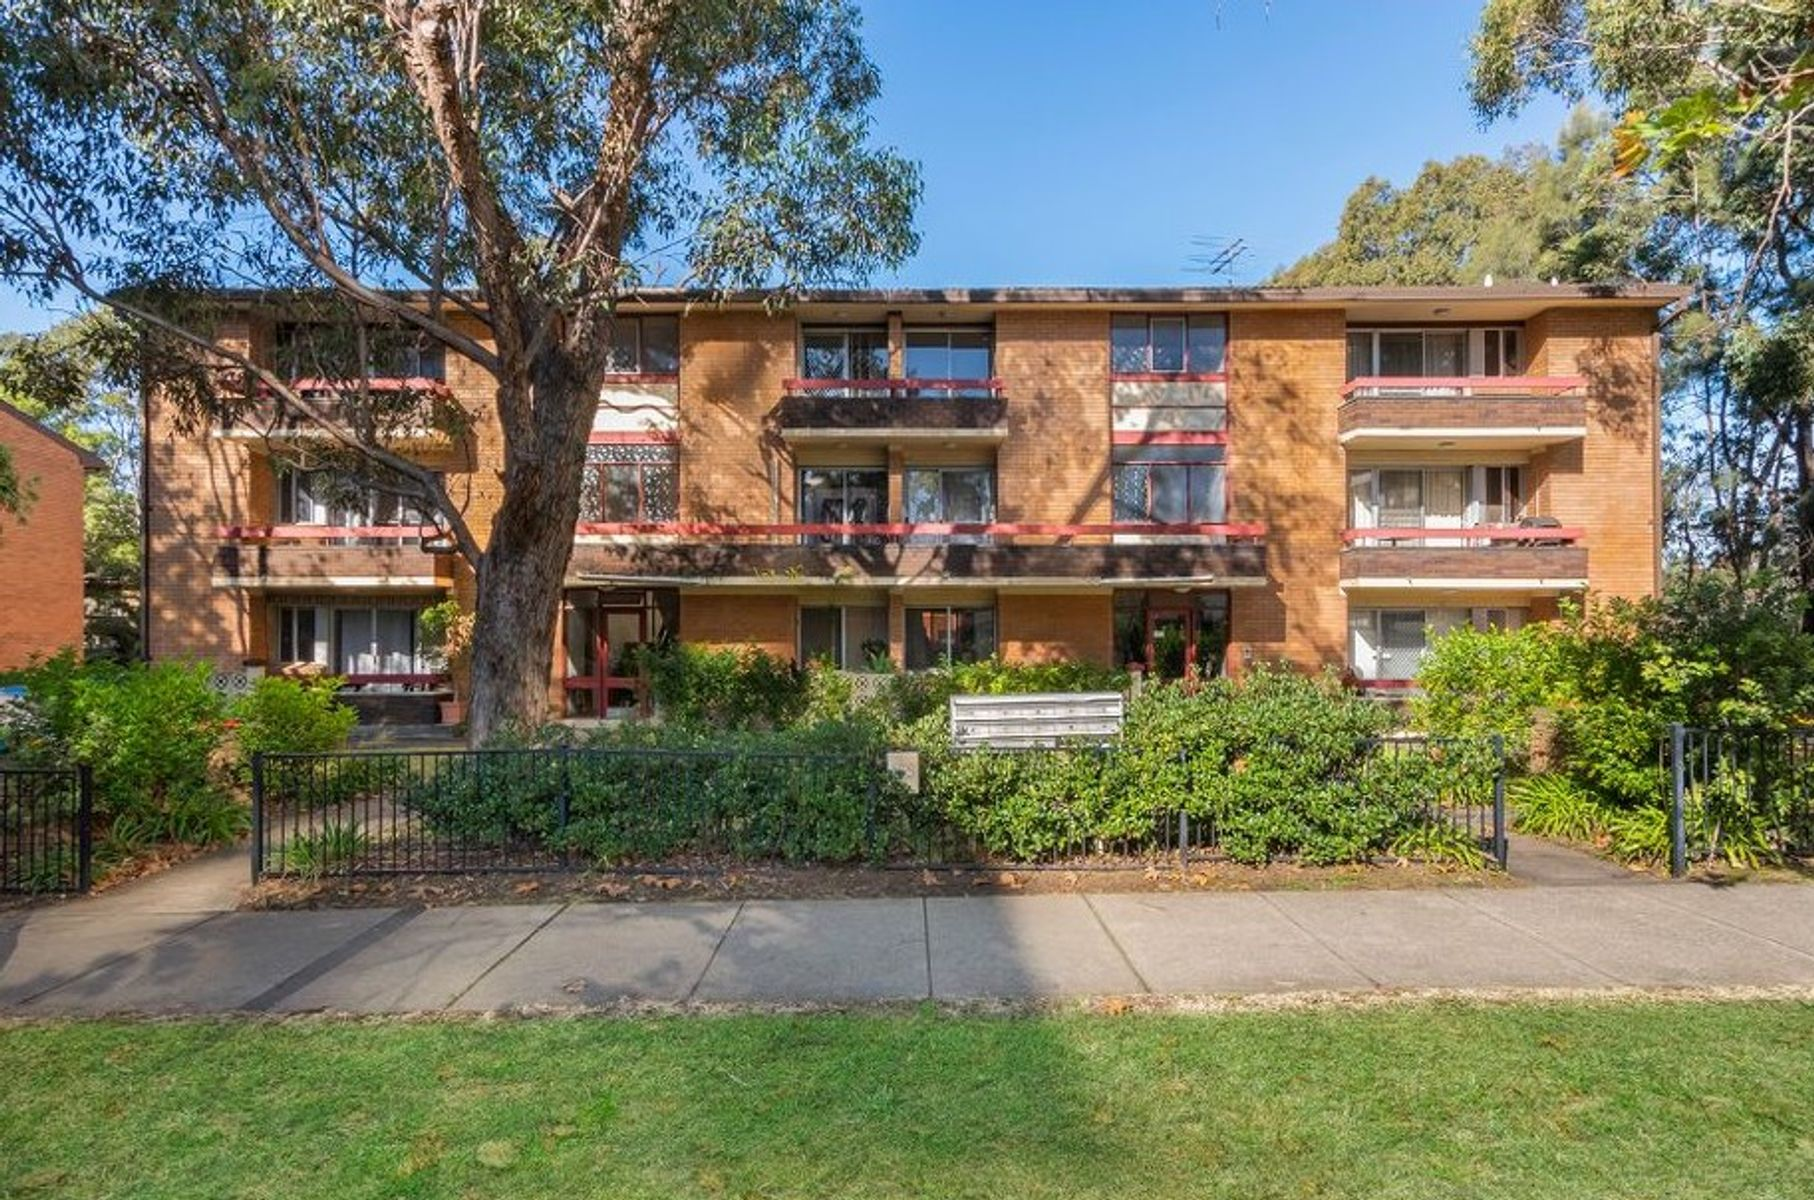 6/155 Herring Road, Macquarie Park, NSW 2113